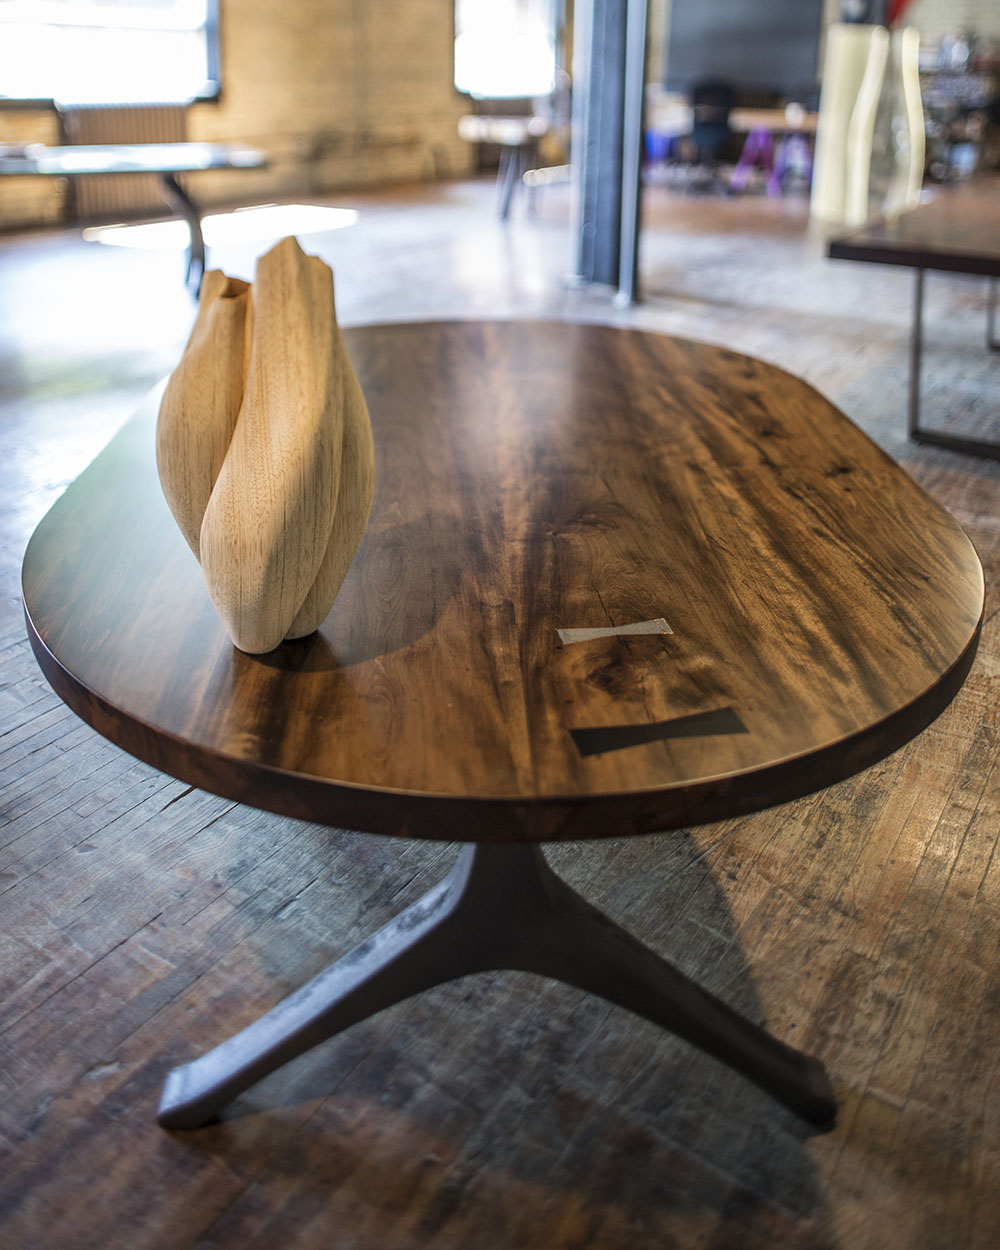 Custom oval wood dining table with metal legs in modern industrial studio space with wooden vase.